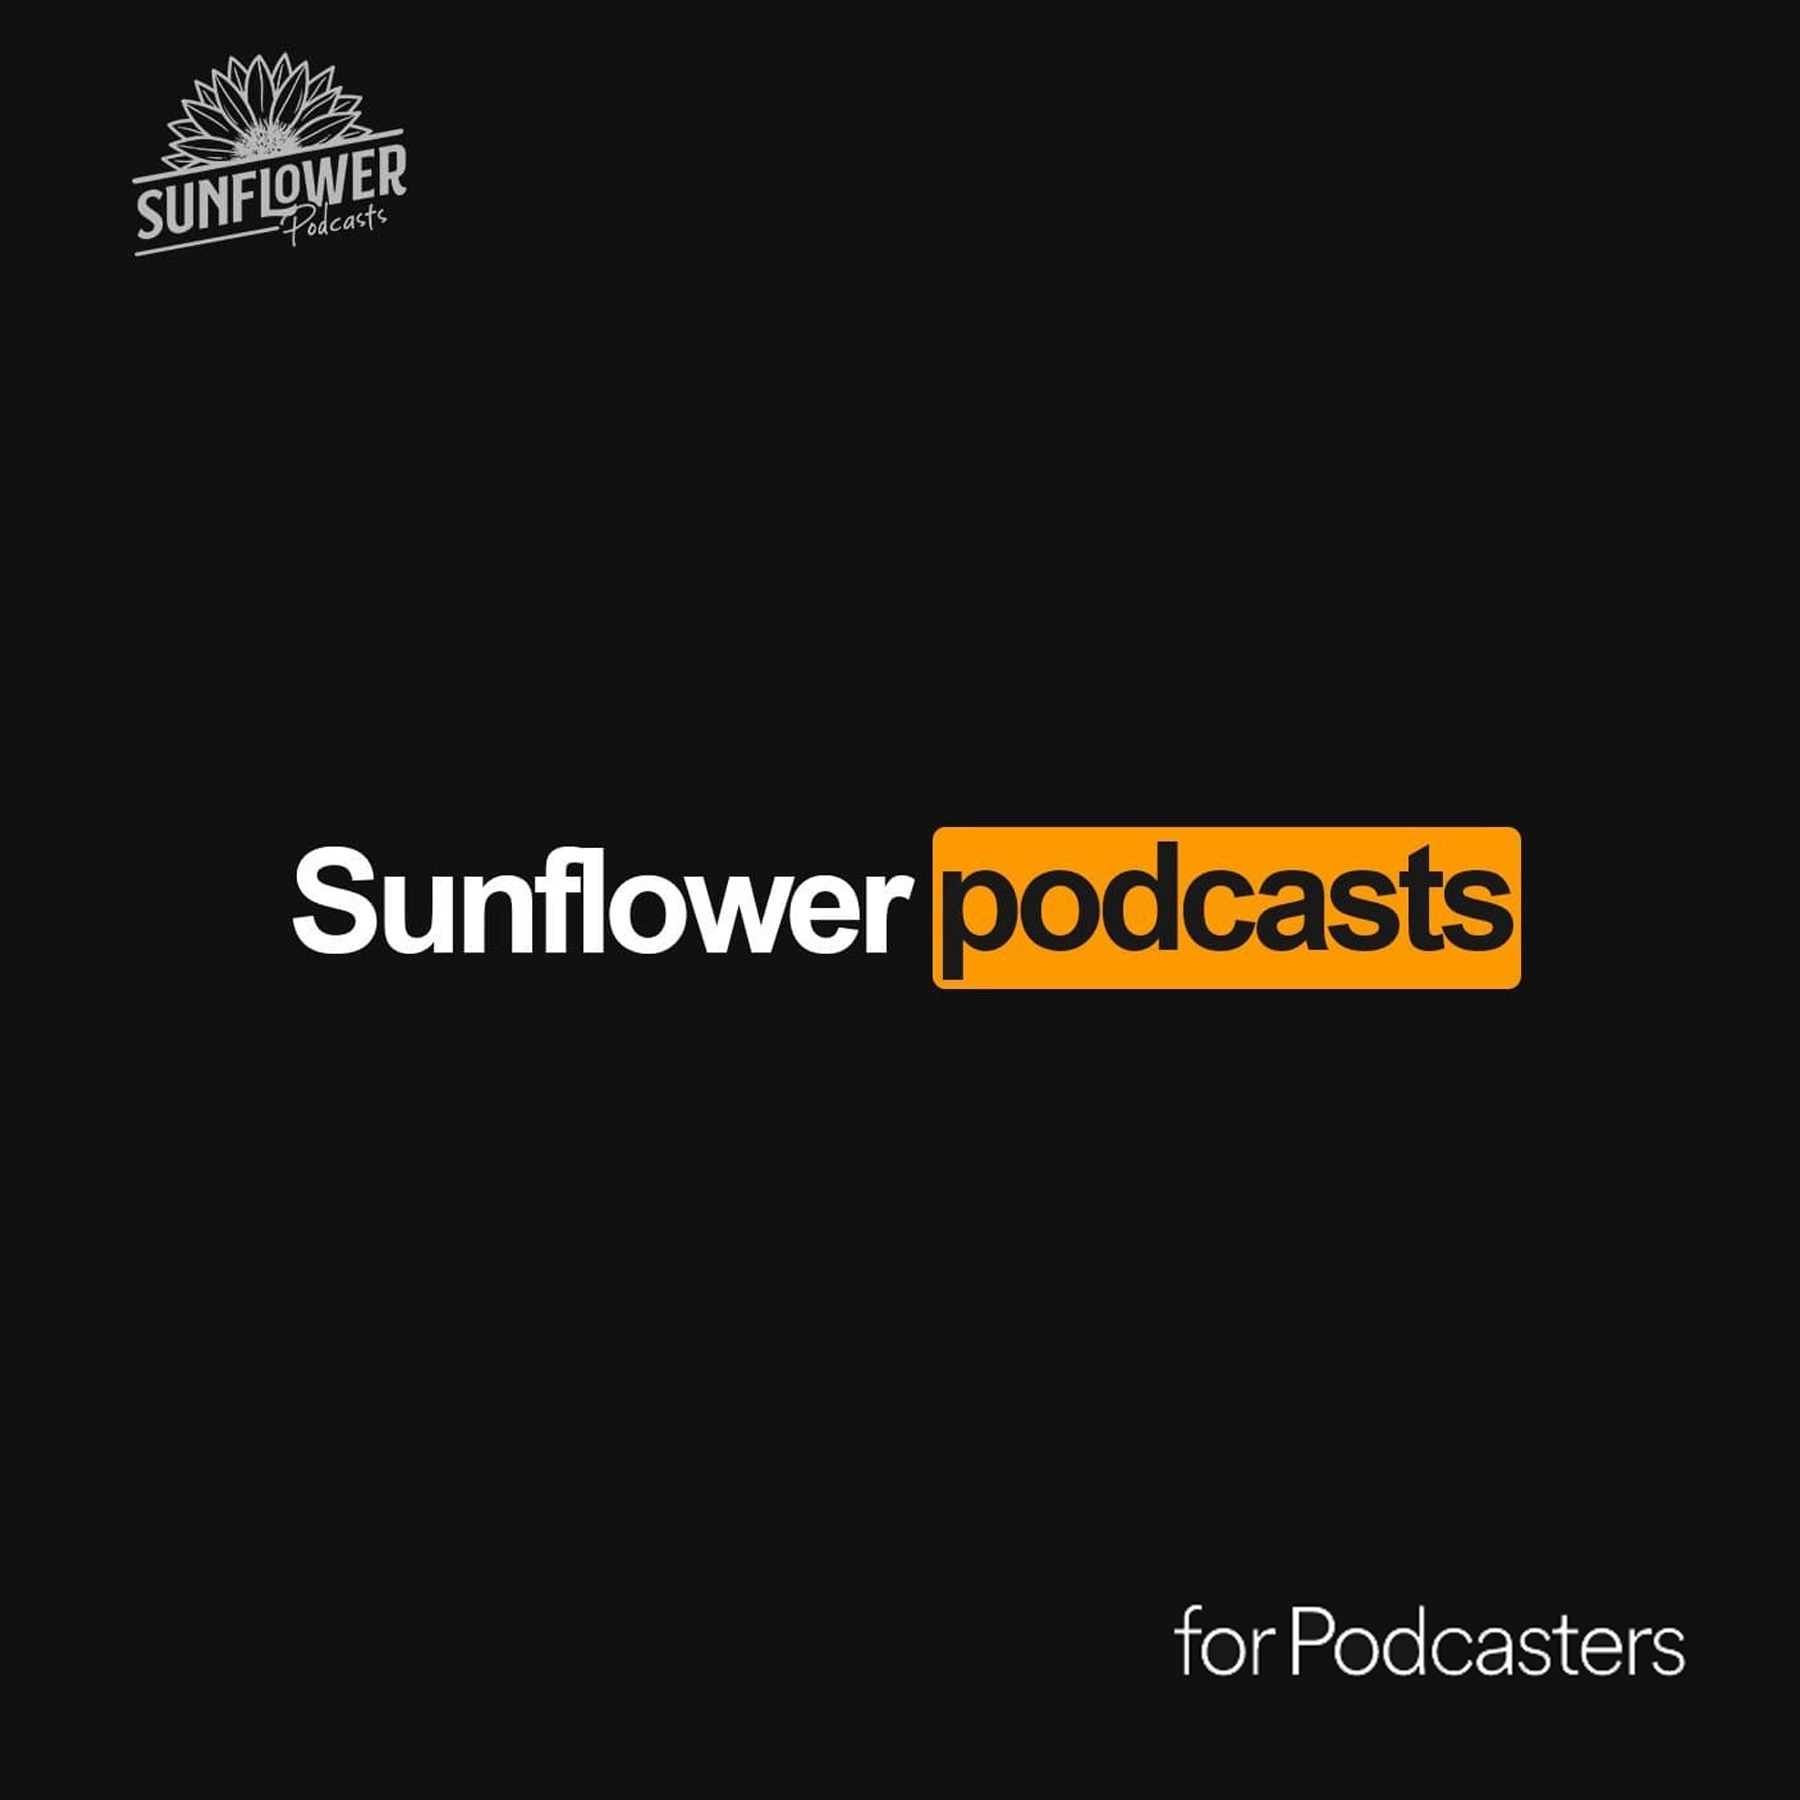 #108 - Sunflower For Podcasters EP1 - Novos podcasters